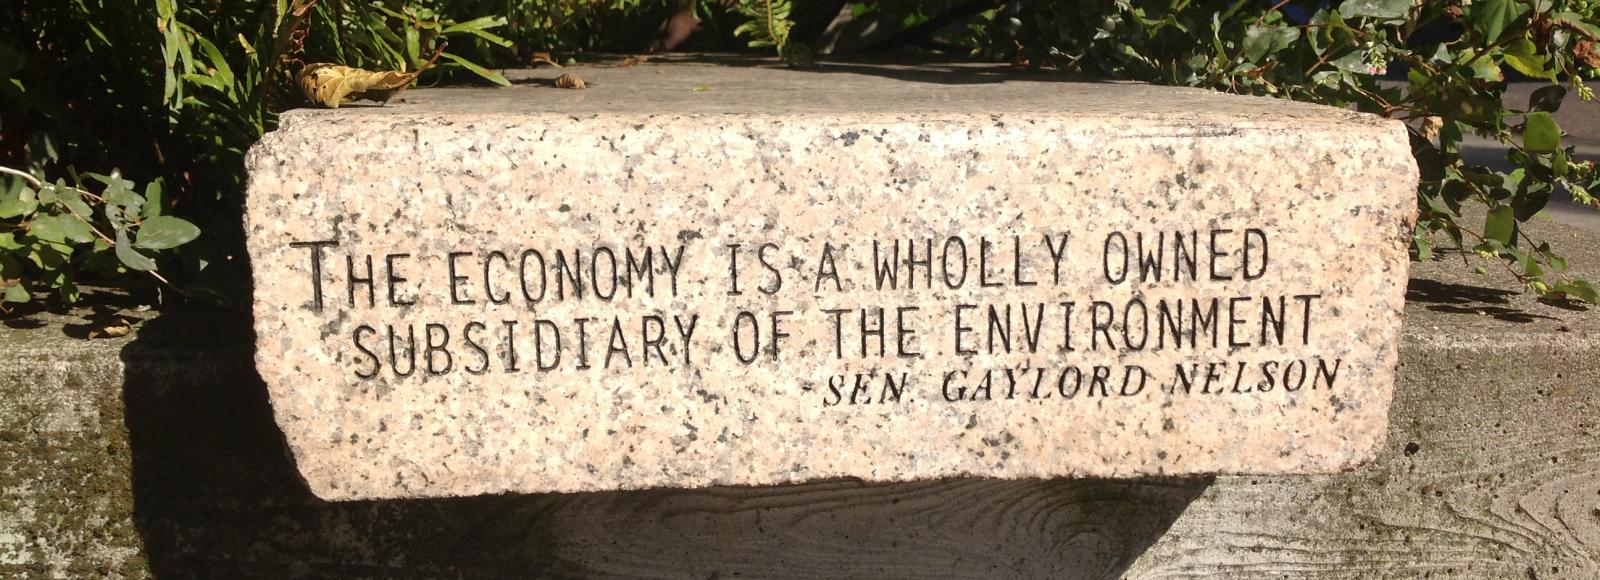 Granite bench engraved with